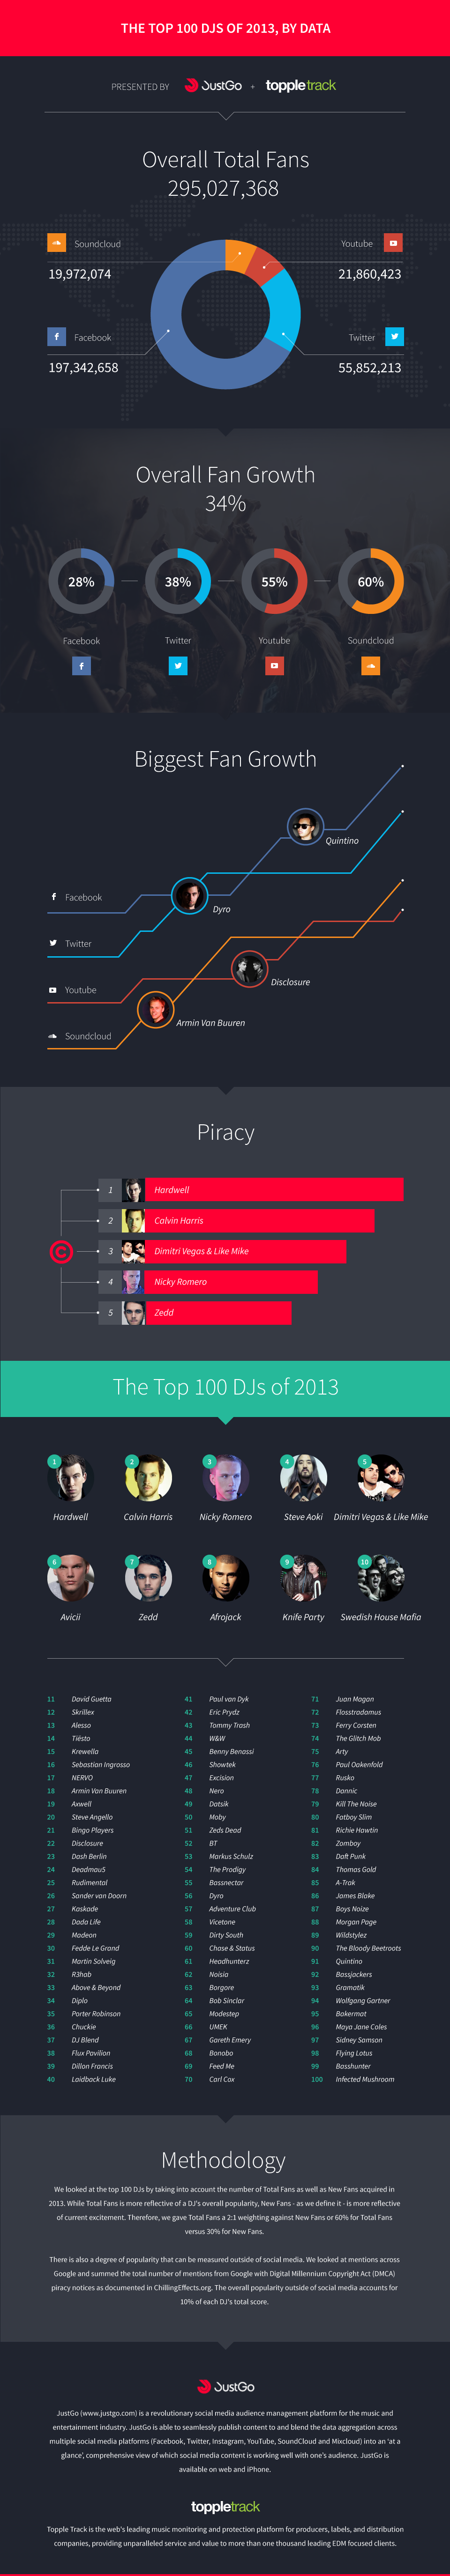 The Top 100 DJs of 2013, By Data - presented by JustGo & Topple Track